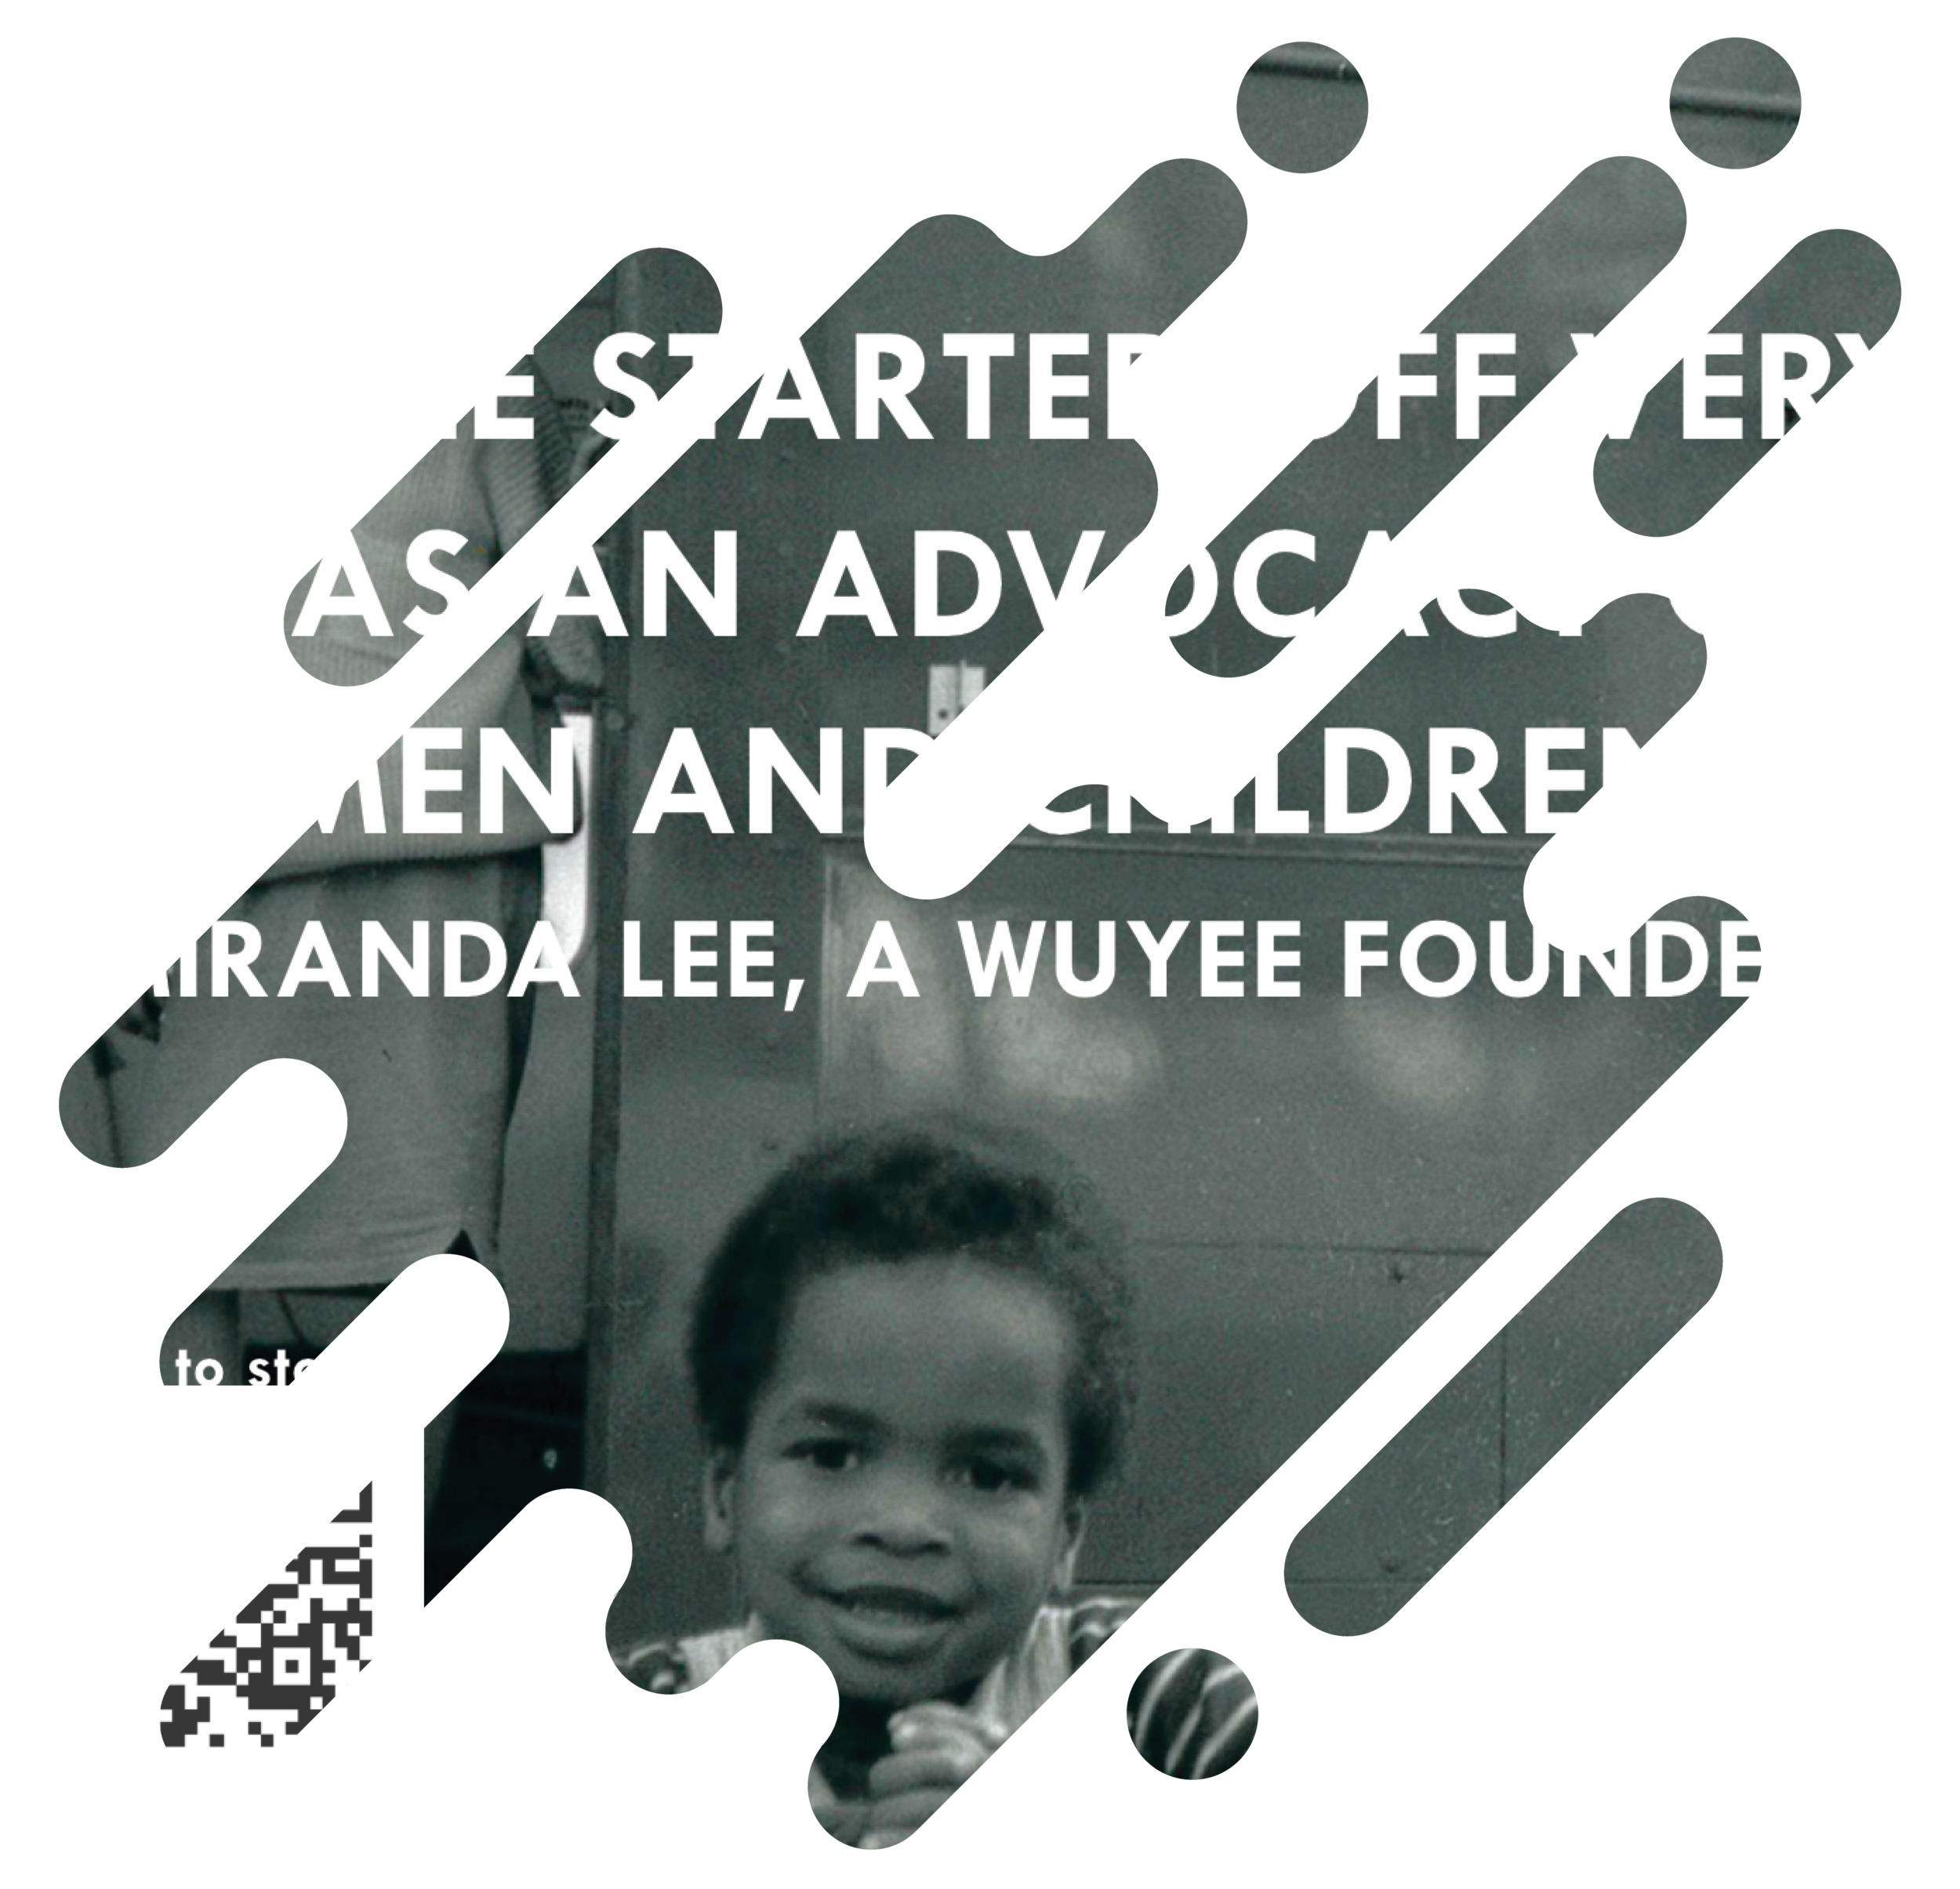 Wu Yee Stories is an experiential platform that allows people in California to advocate for increased funding in early childhood education. -